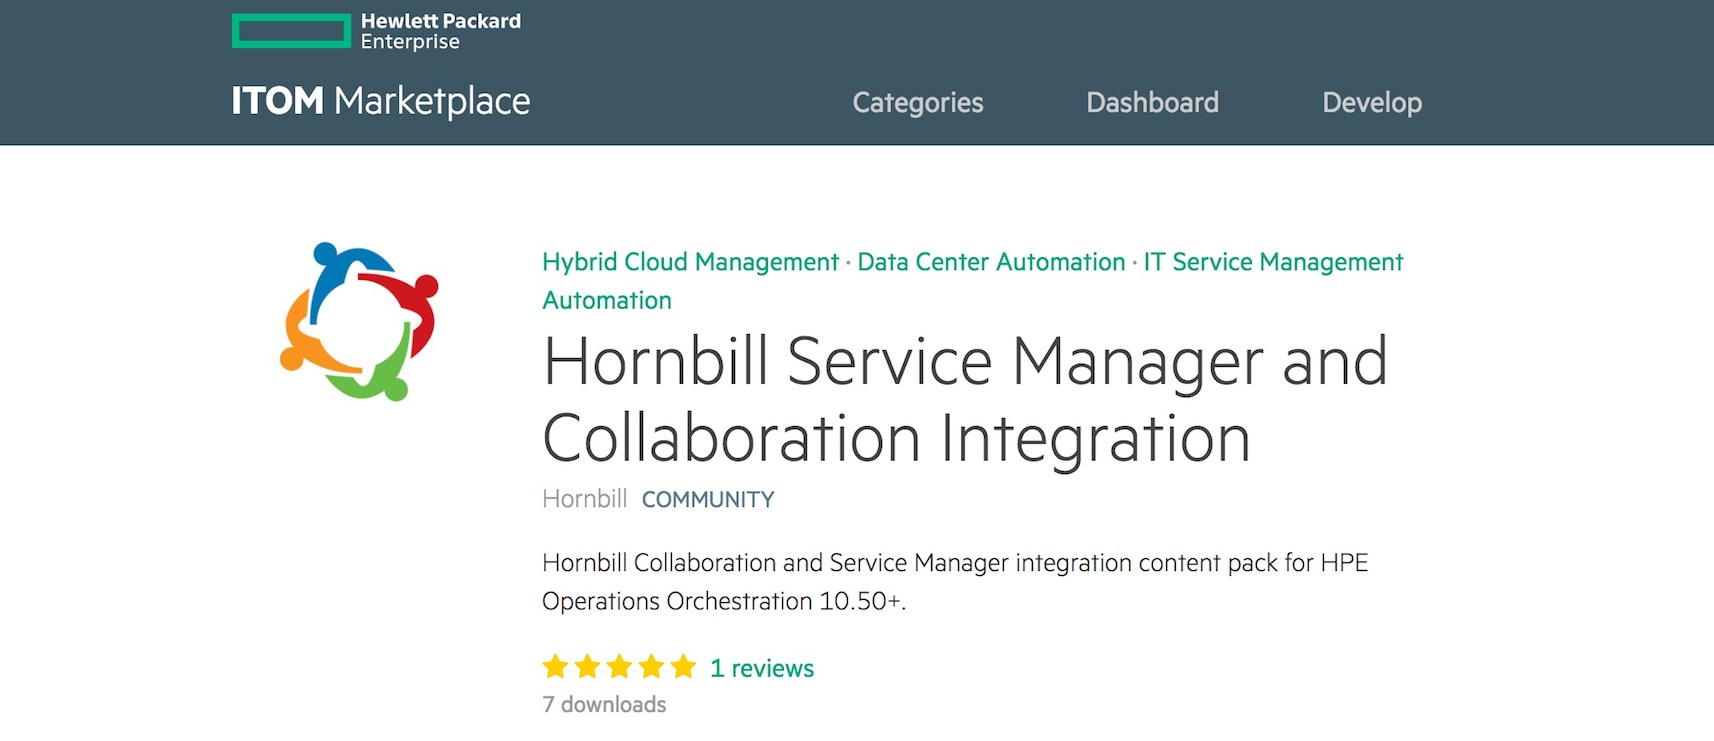 INTEGRATION WITH HP OPERATIONS ORCHESTRATION 2